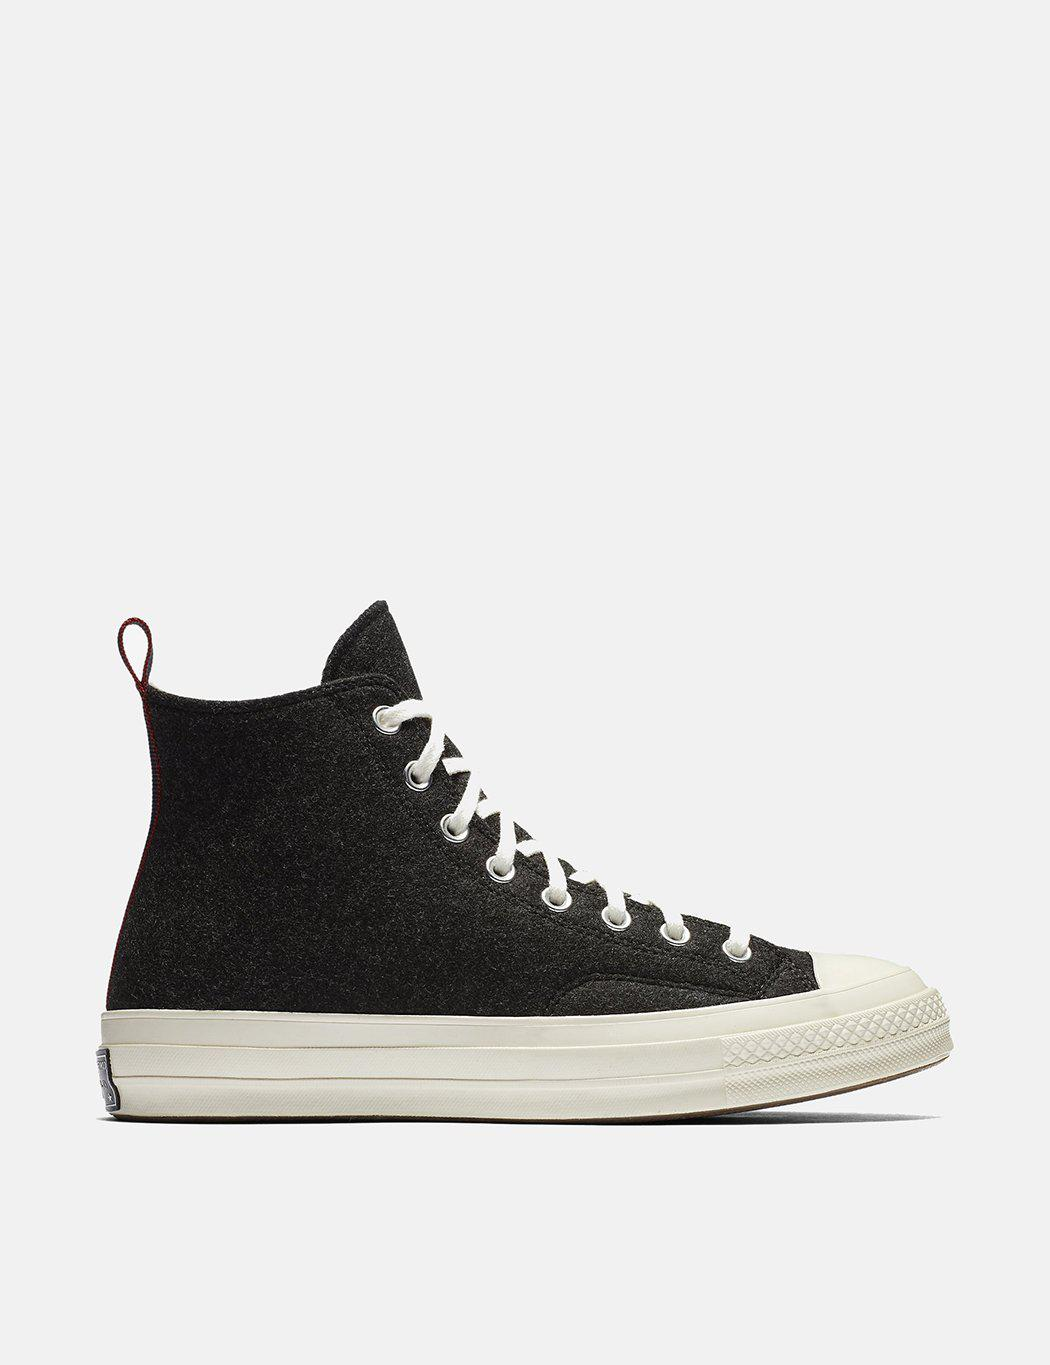 fcaefb698c1f6d Converse 70 s Chuck Taylor Hi (felt) in Black for Men - Lyst